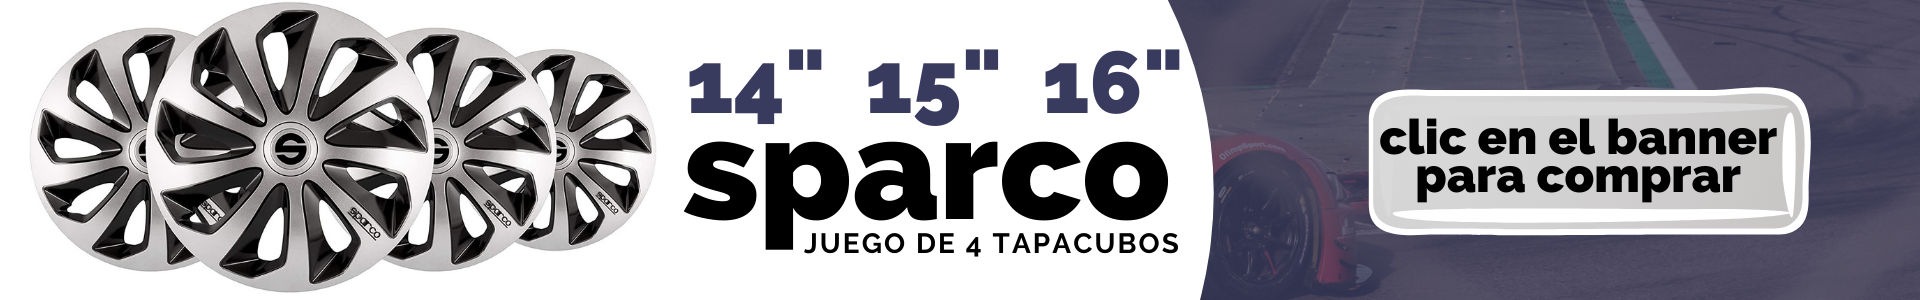 sparco tapacubos